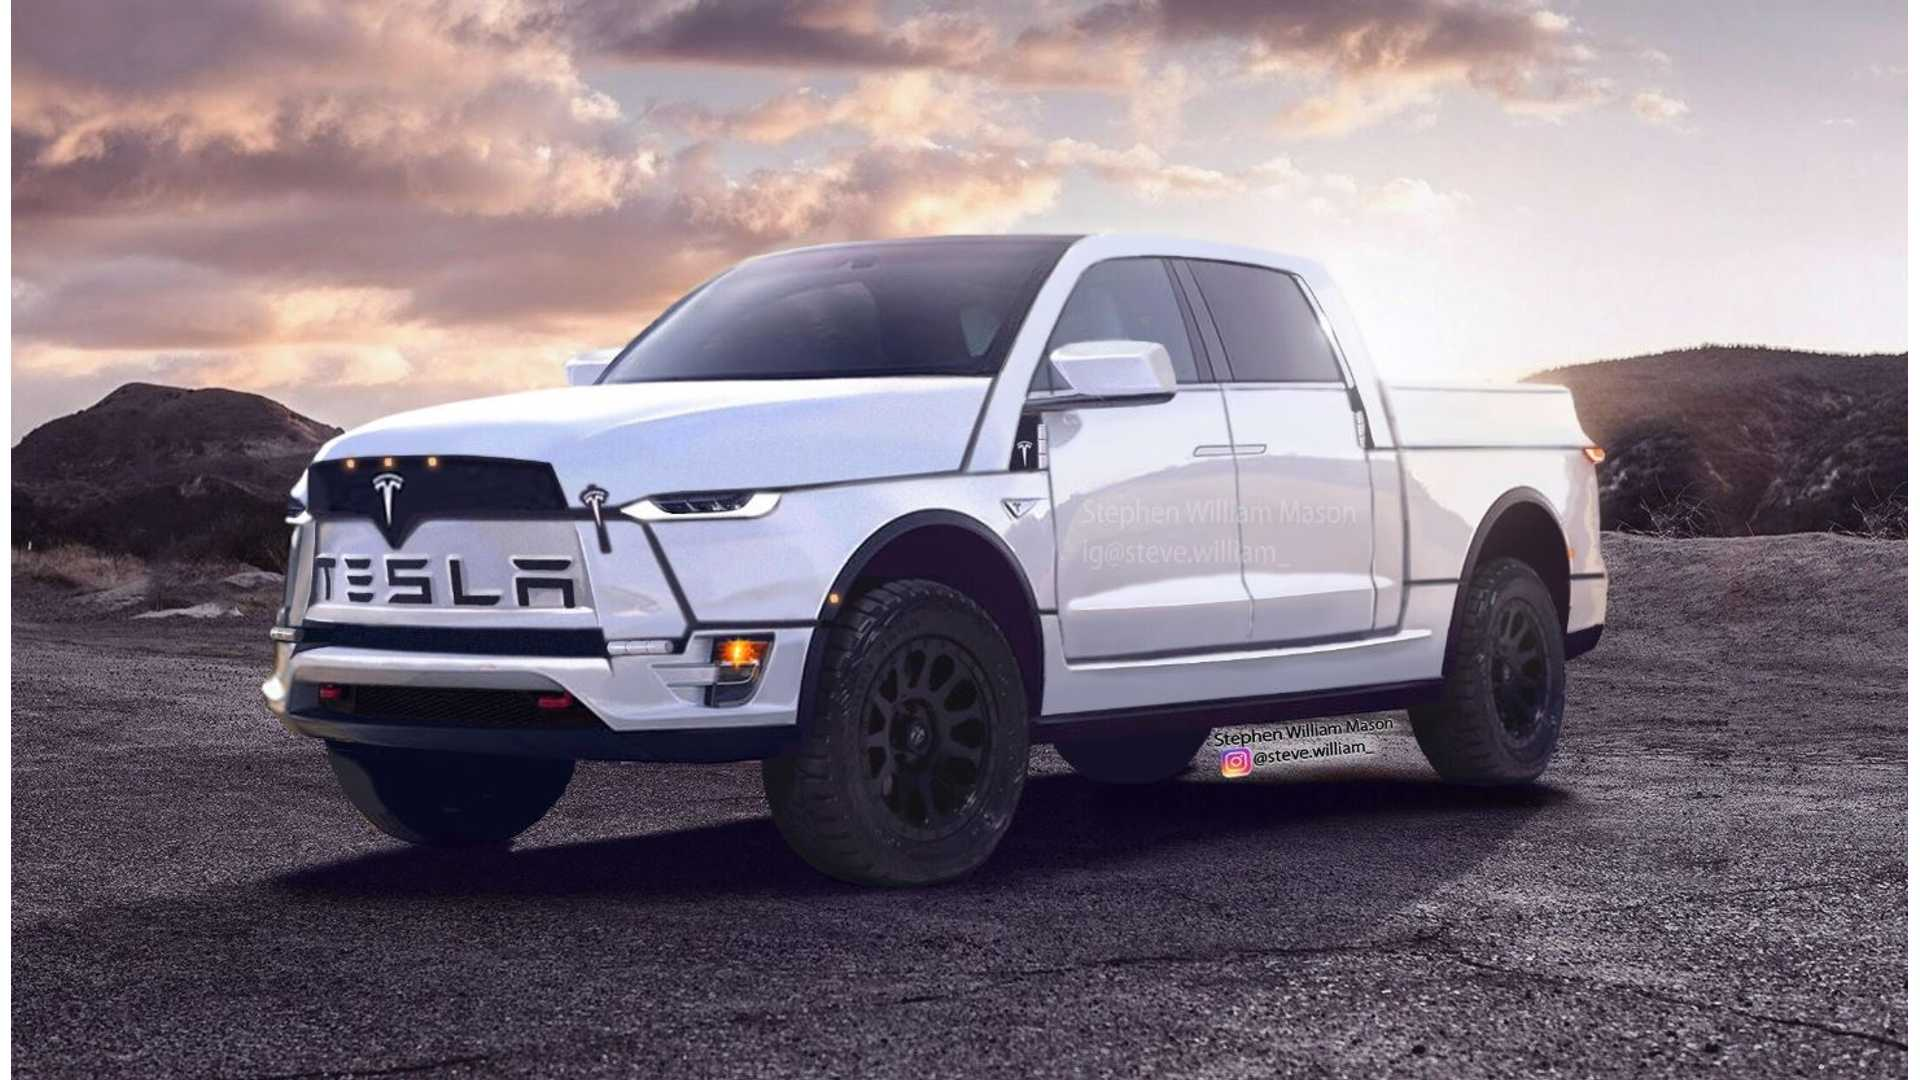 Tesla Announces Electric Pick-Up Truck That Will Cost Under $50,000 1